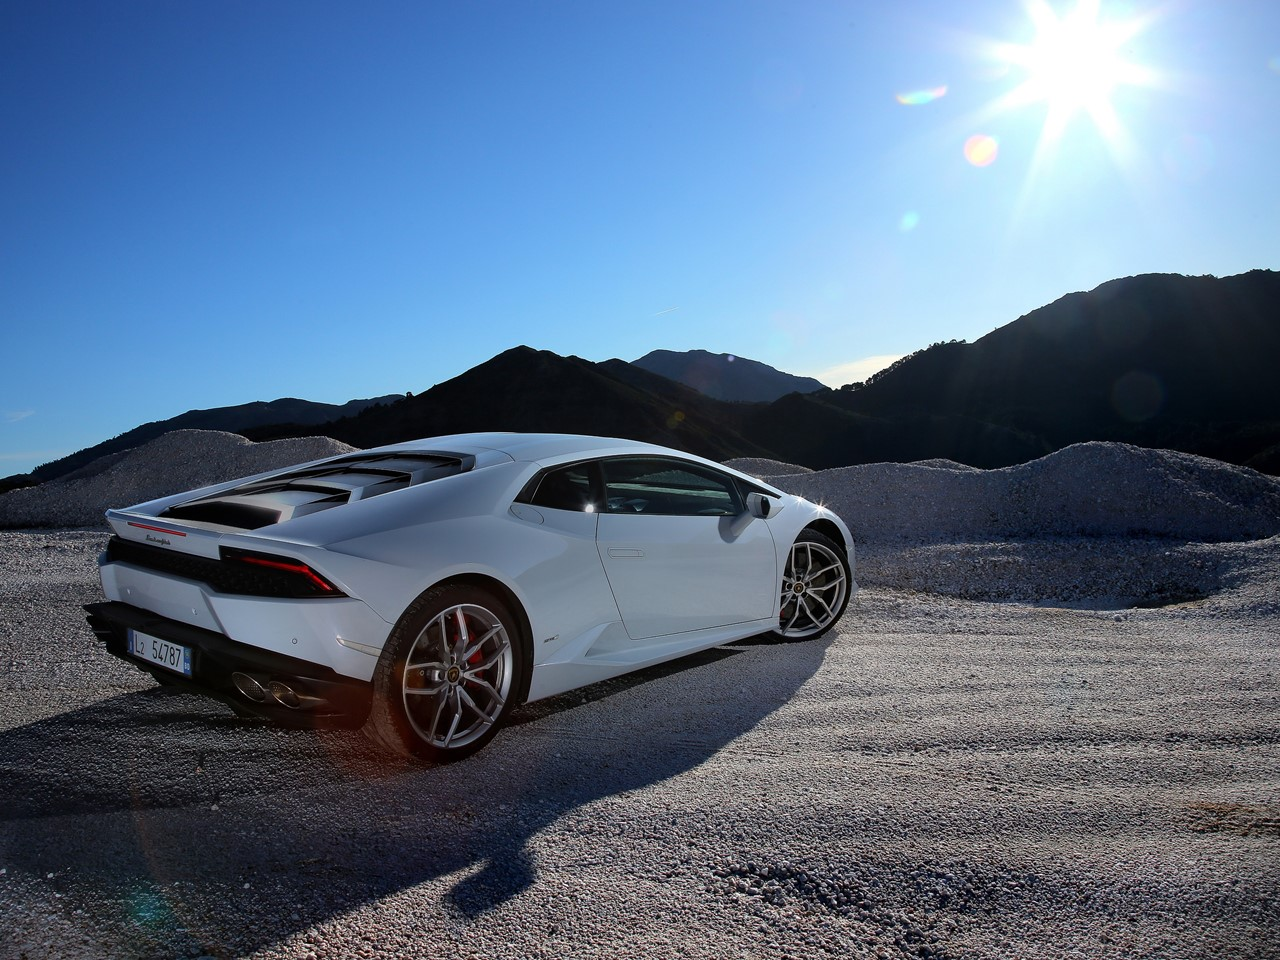 Lamborghini Is The First Italian Supercar To Use All Wheel Drive And Was  Introduced To The World In 1993 By The Diablo VT. All Wheel Drive Optimizes  ...